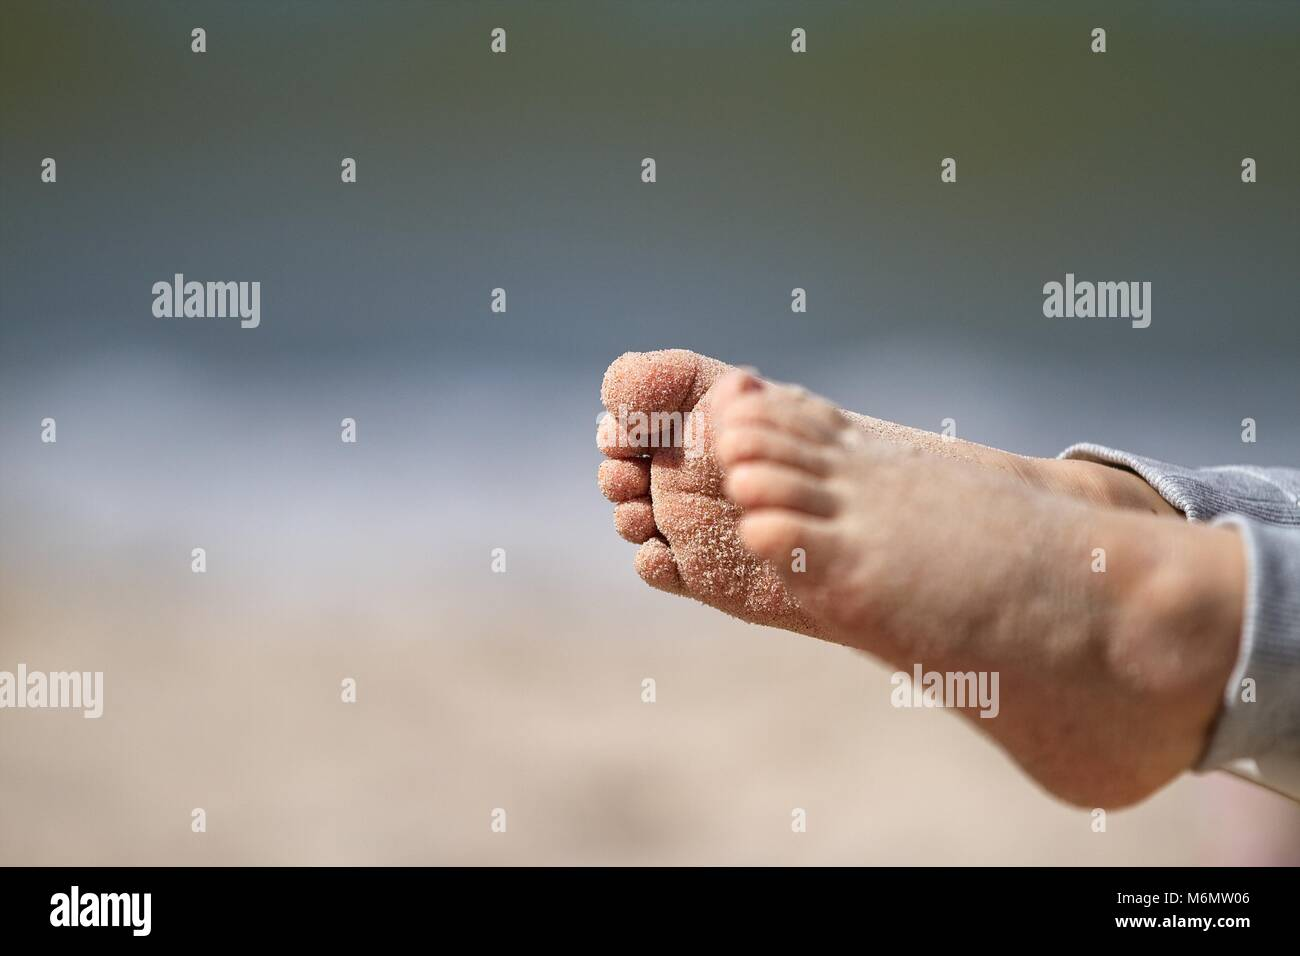 feet covered in sand stockfotos feet covered in sand bilder alamy. Black Bedroom Furniture Sets. Home Design Ideas